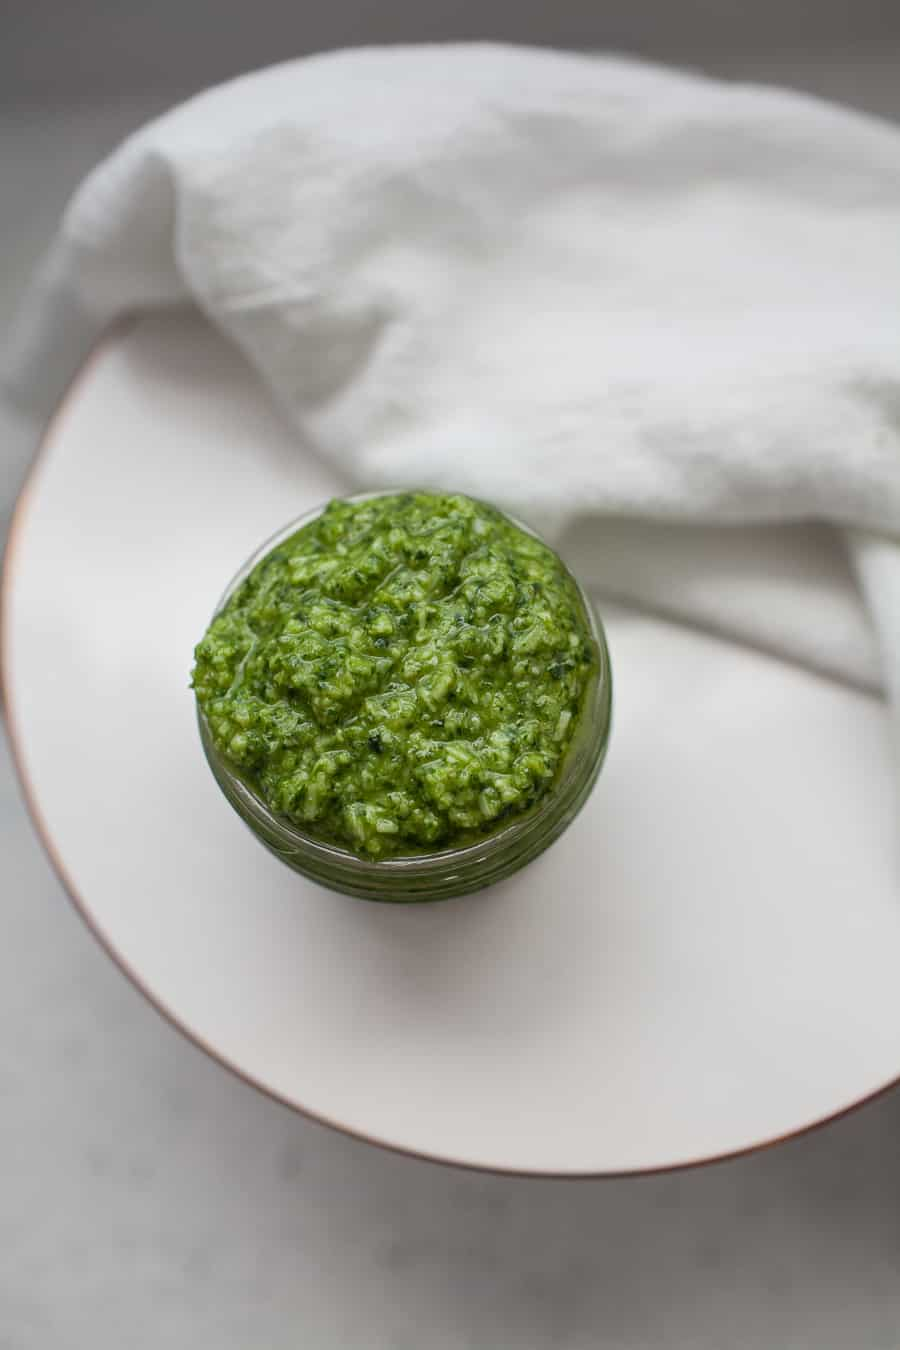 If you're a pesto fan, you're going to fall even more in love with pesto once you realize how easy it is to make it homemade! This homemade kale arugula pesto variation is a perfect peppery, smooth blend of pesto that you'll choose every time. Make this kale arugula pesto ASAP! homemade pesto   arugula pesto   kale pesto   kale arugula pesto   homemade italian sauces   homemade pasta sauce   pasta sauce recipes